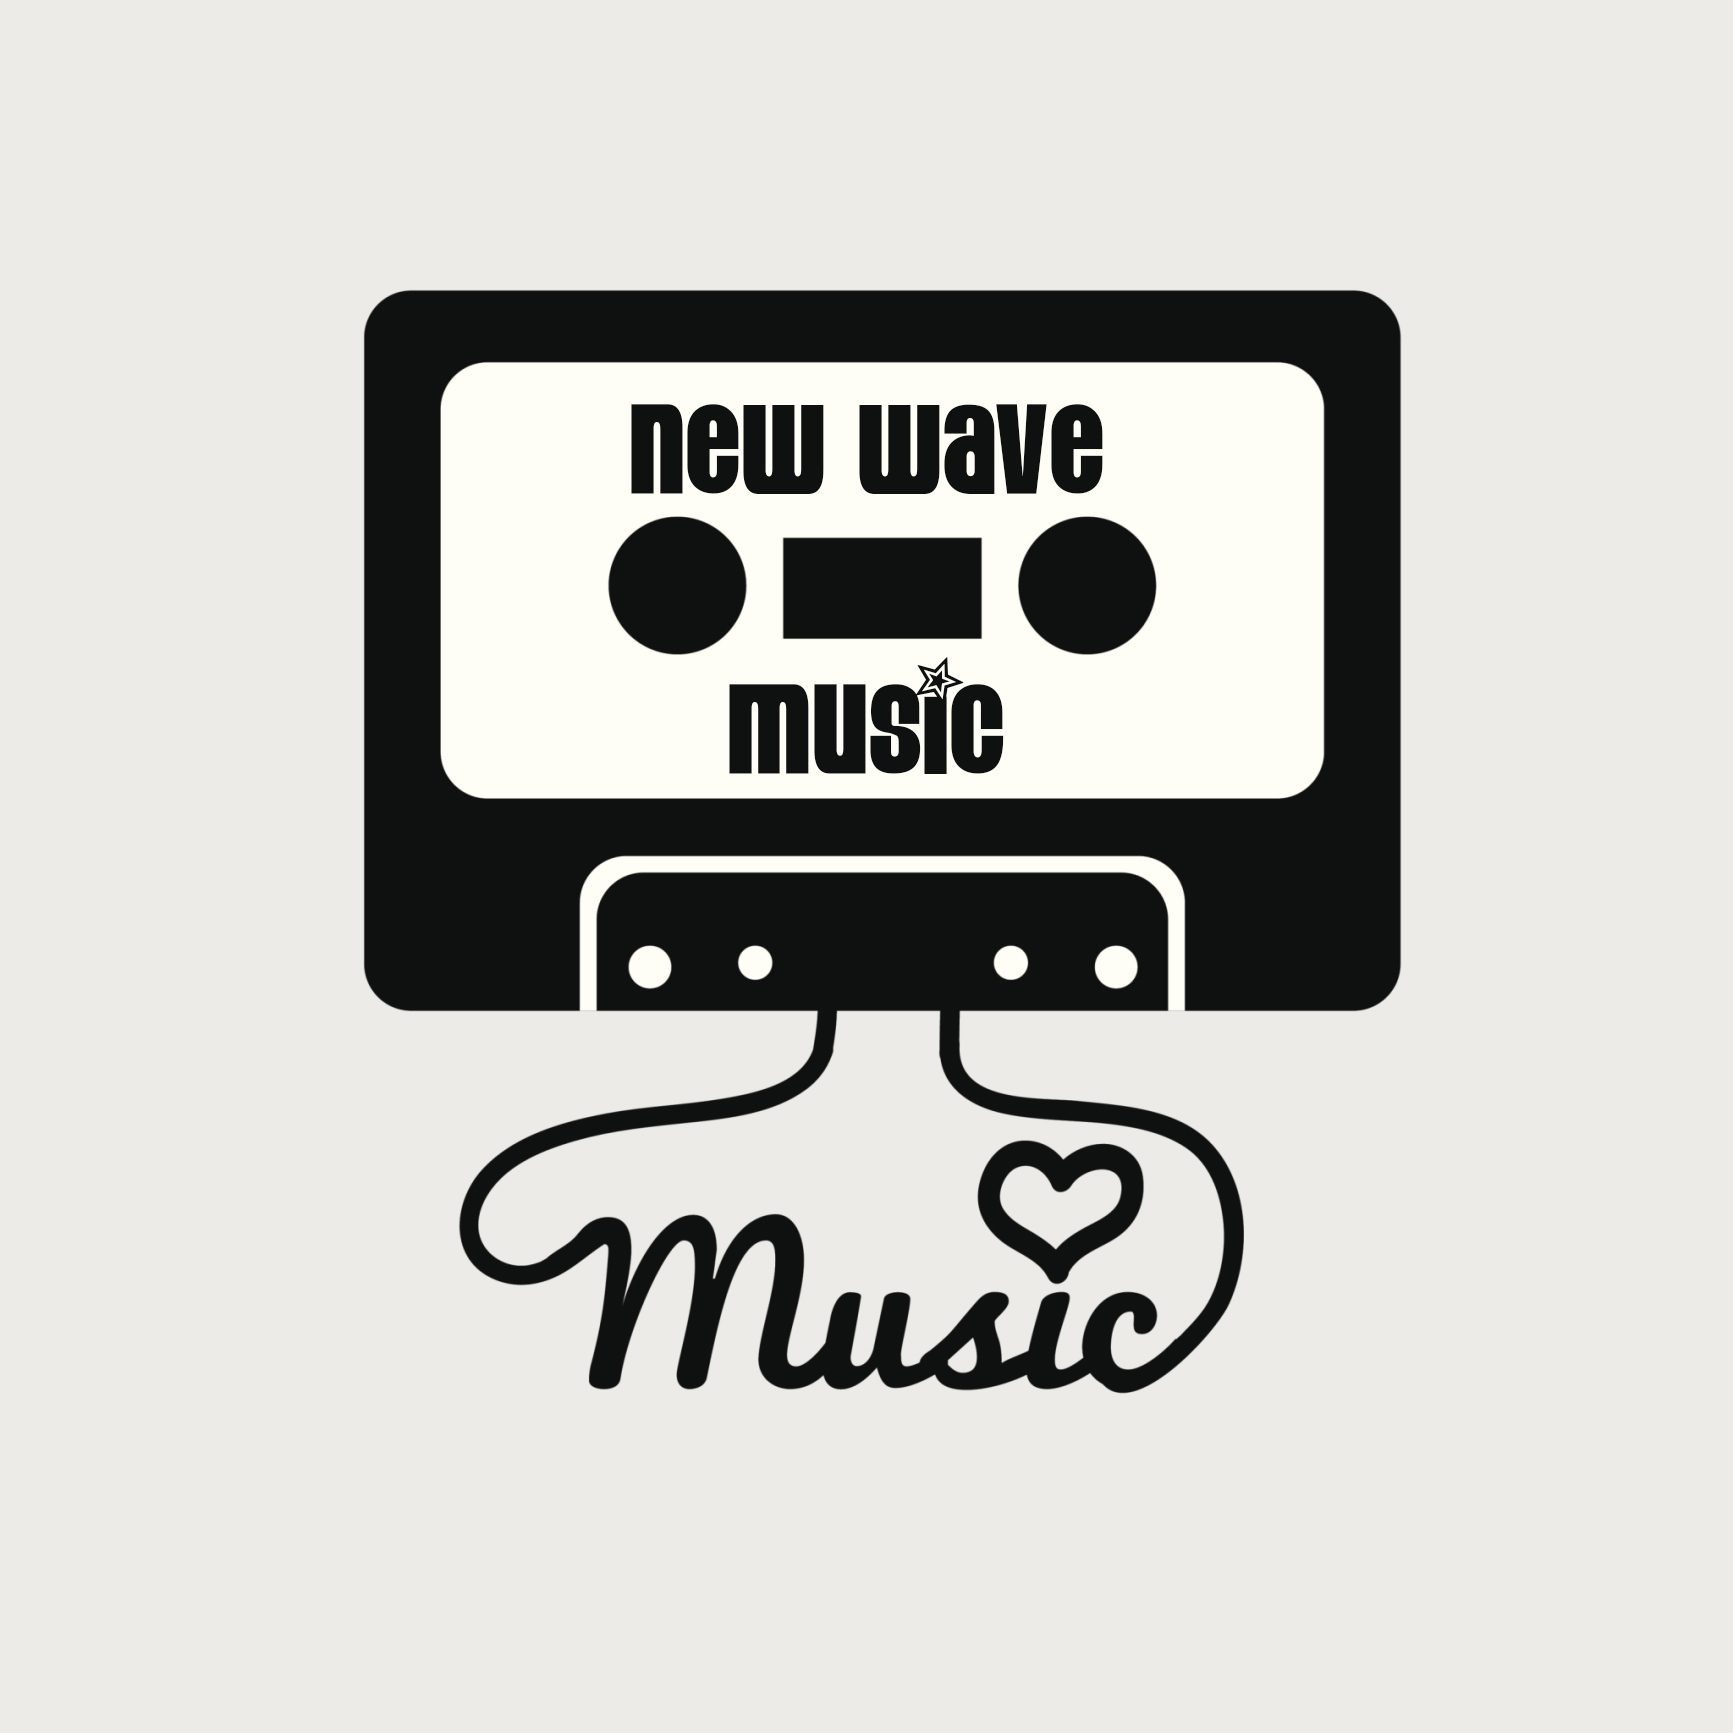 American new wave music